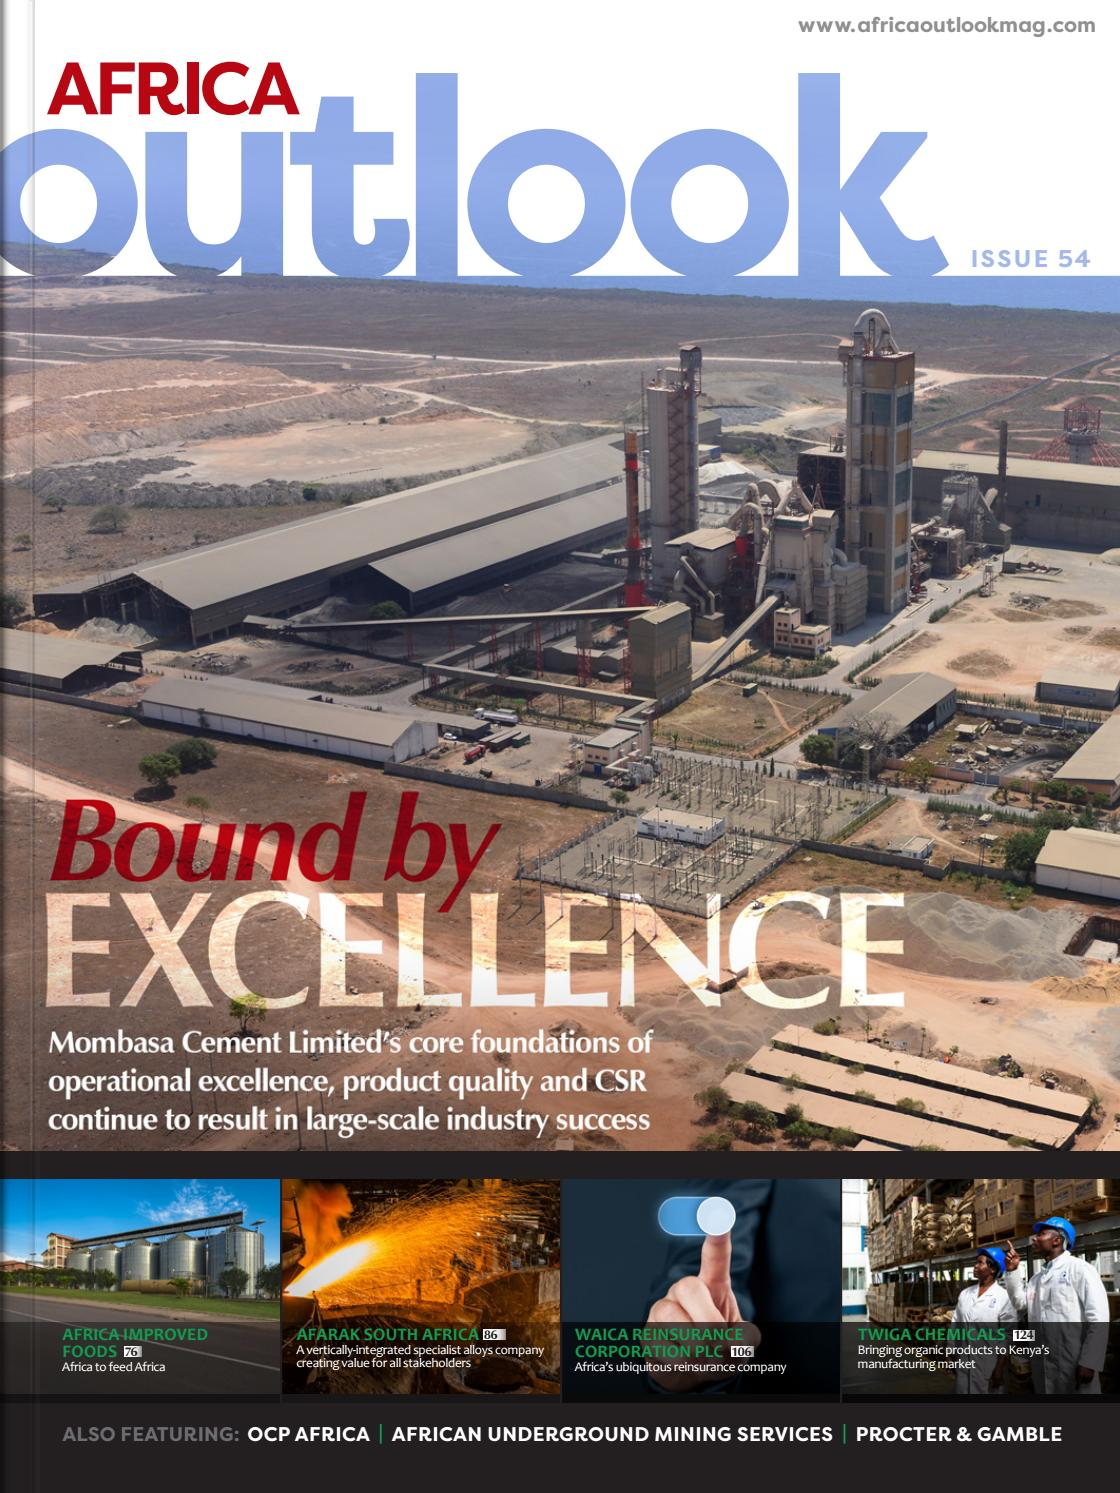 Africa Outlook Issue 54 By Outlook Publishing Issuu